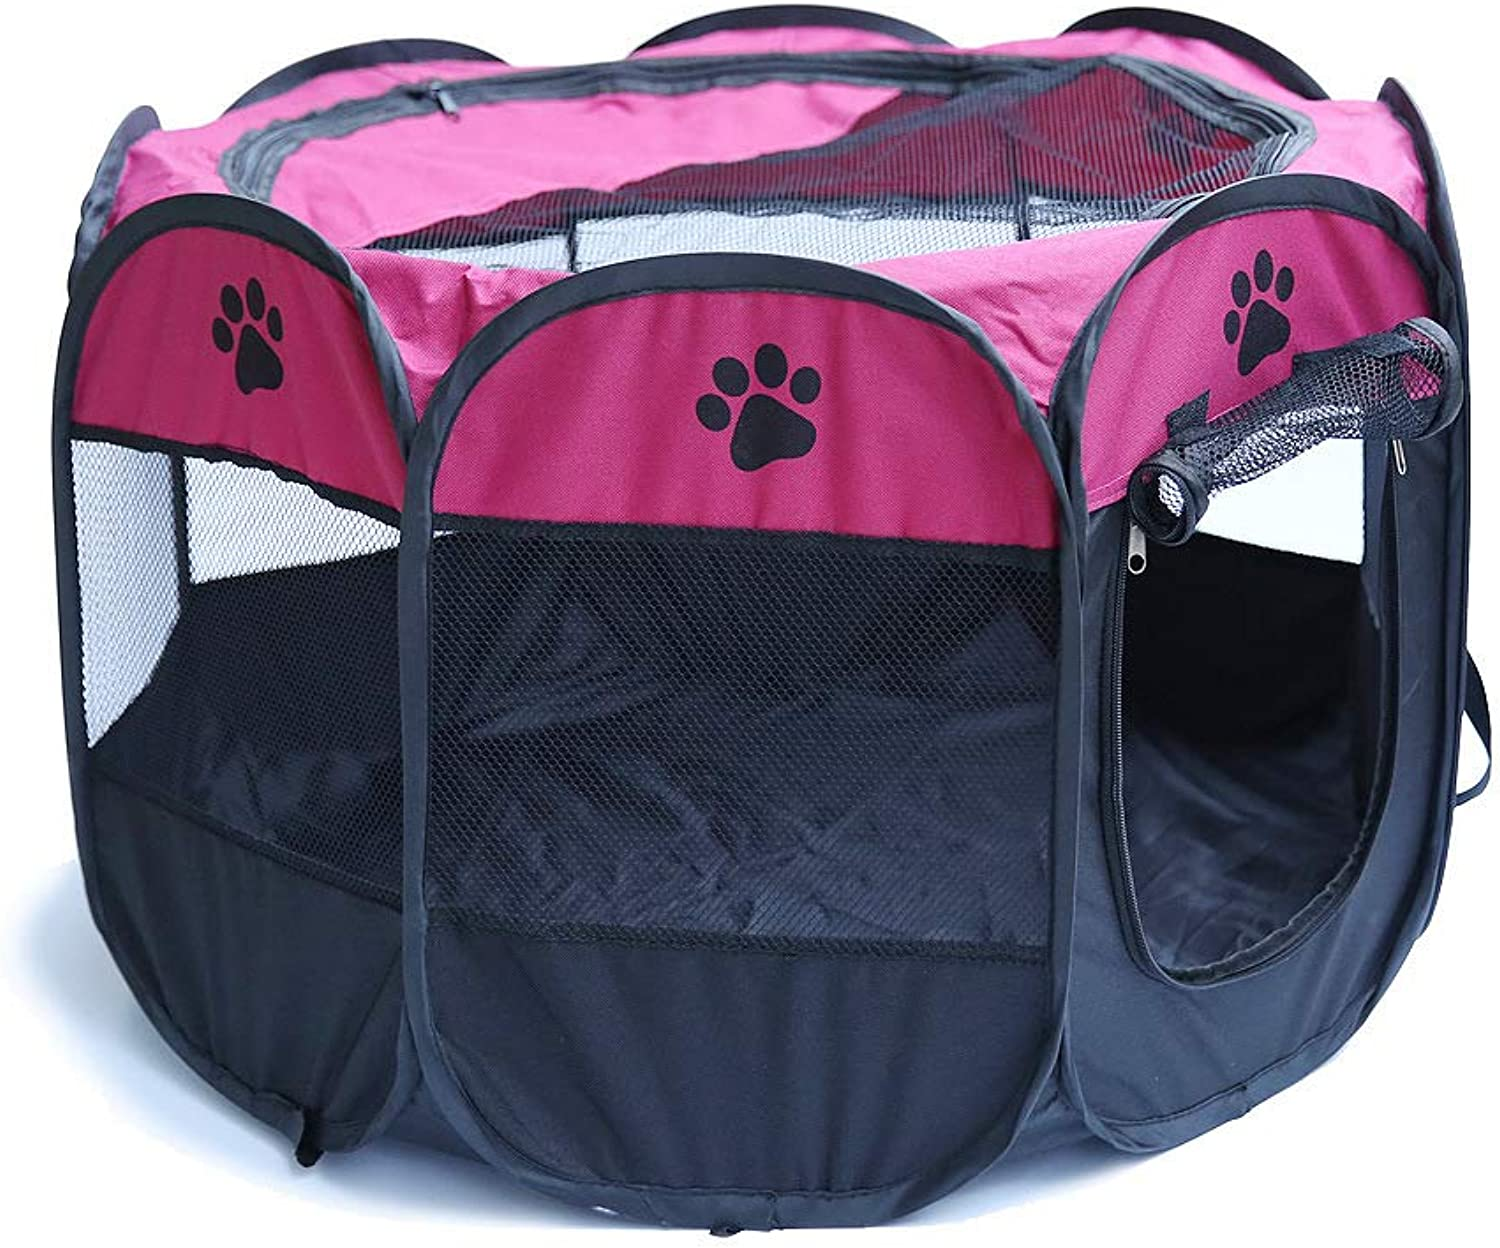 JXJL Pet Play Pen Portable Foldable Puppy Dog Pet Cat Rabbit Guinea Pig Fabric Playpen Crate Cage Kennel Tent (pink),70x70x45CM